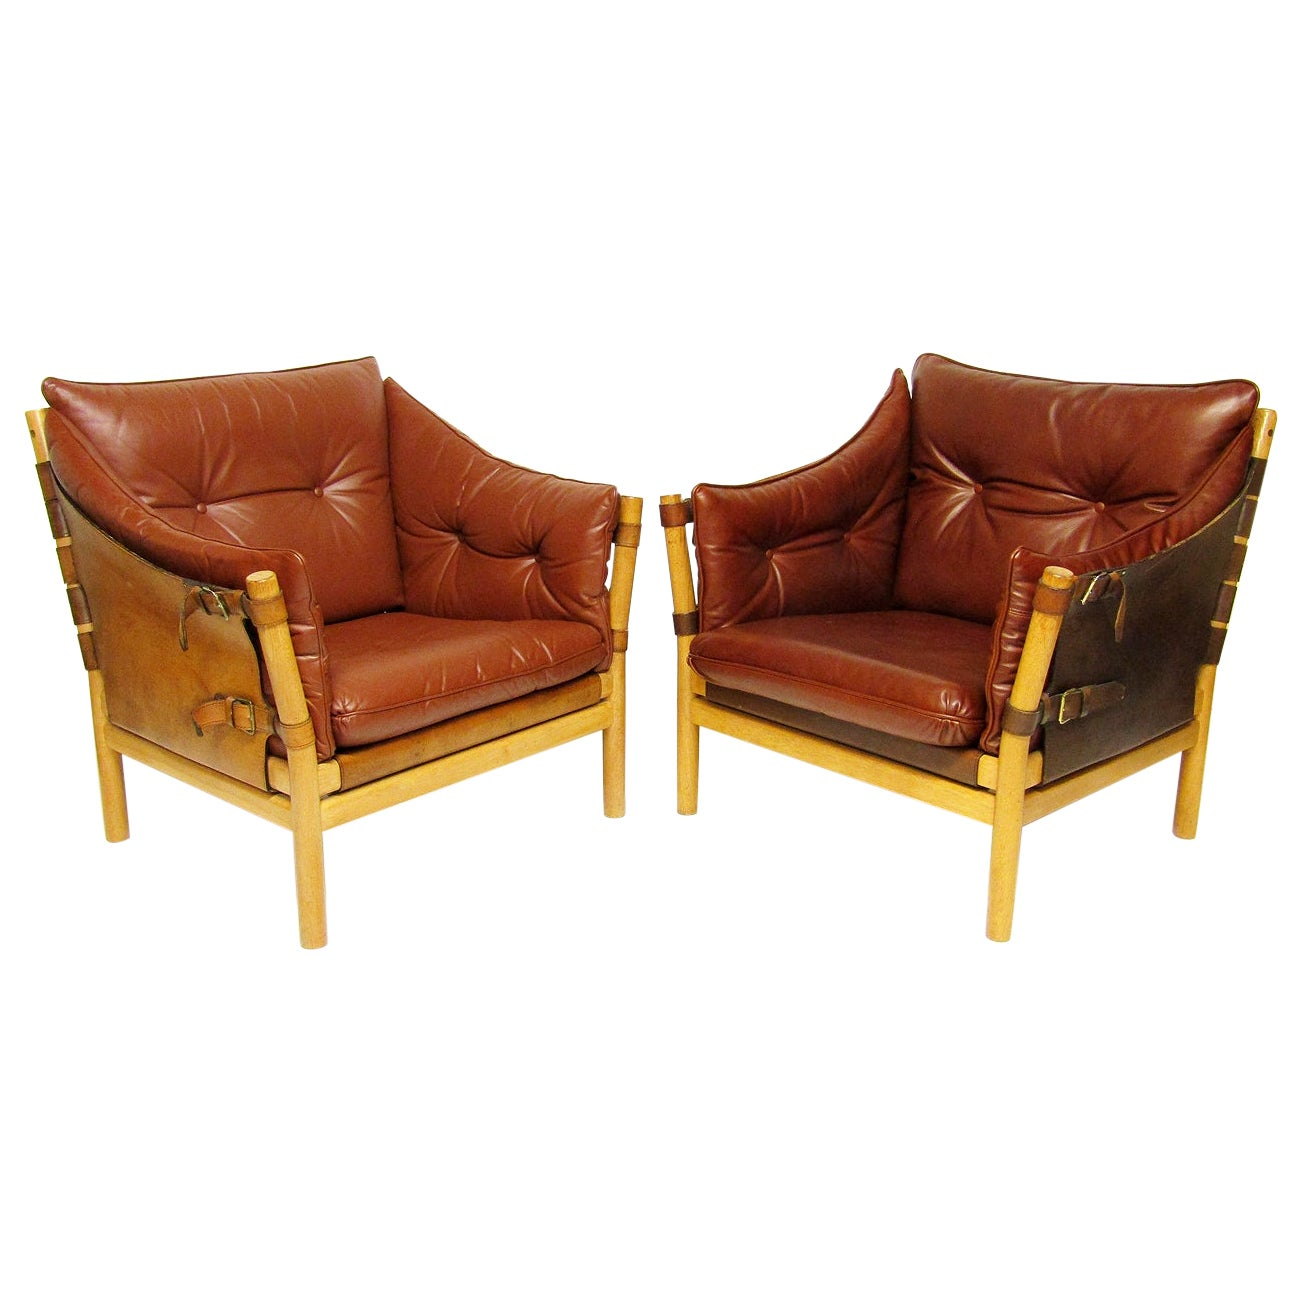 "Pair of 1960s Leather ""Ilona"" Safari Lounge Chairs by Arne Norell for Aneby"